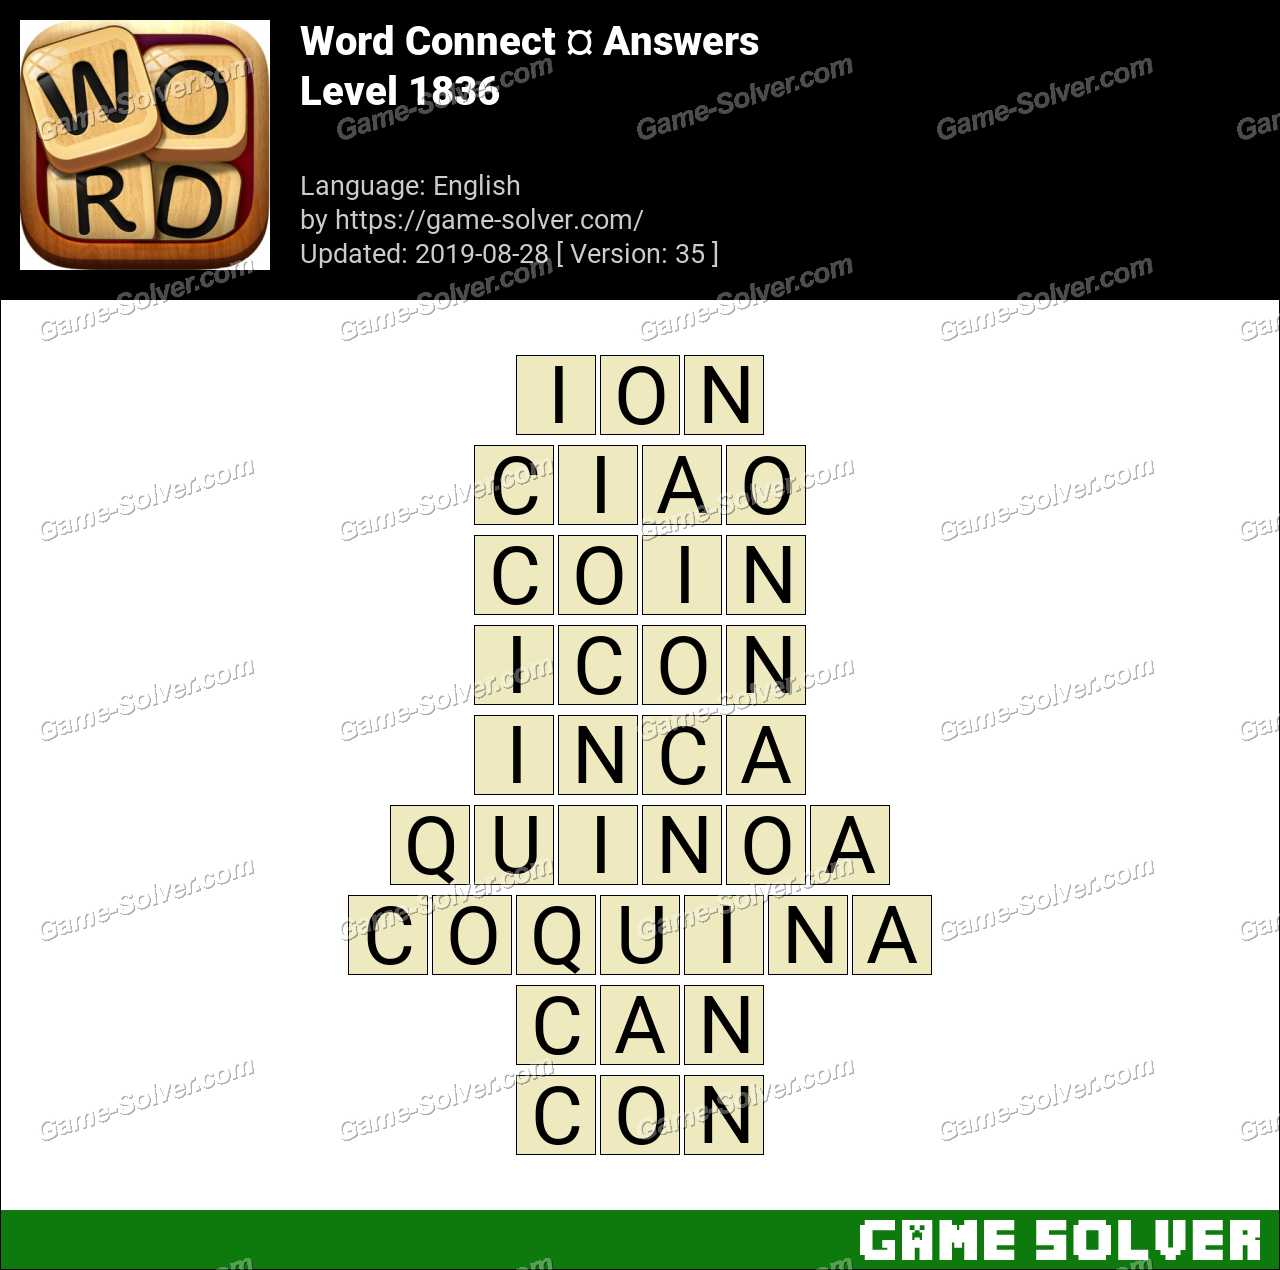 Word Connect Level 1836 Answers